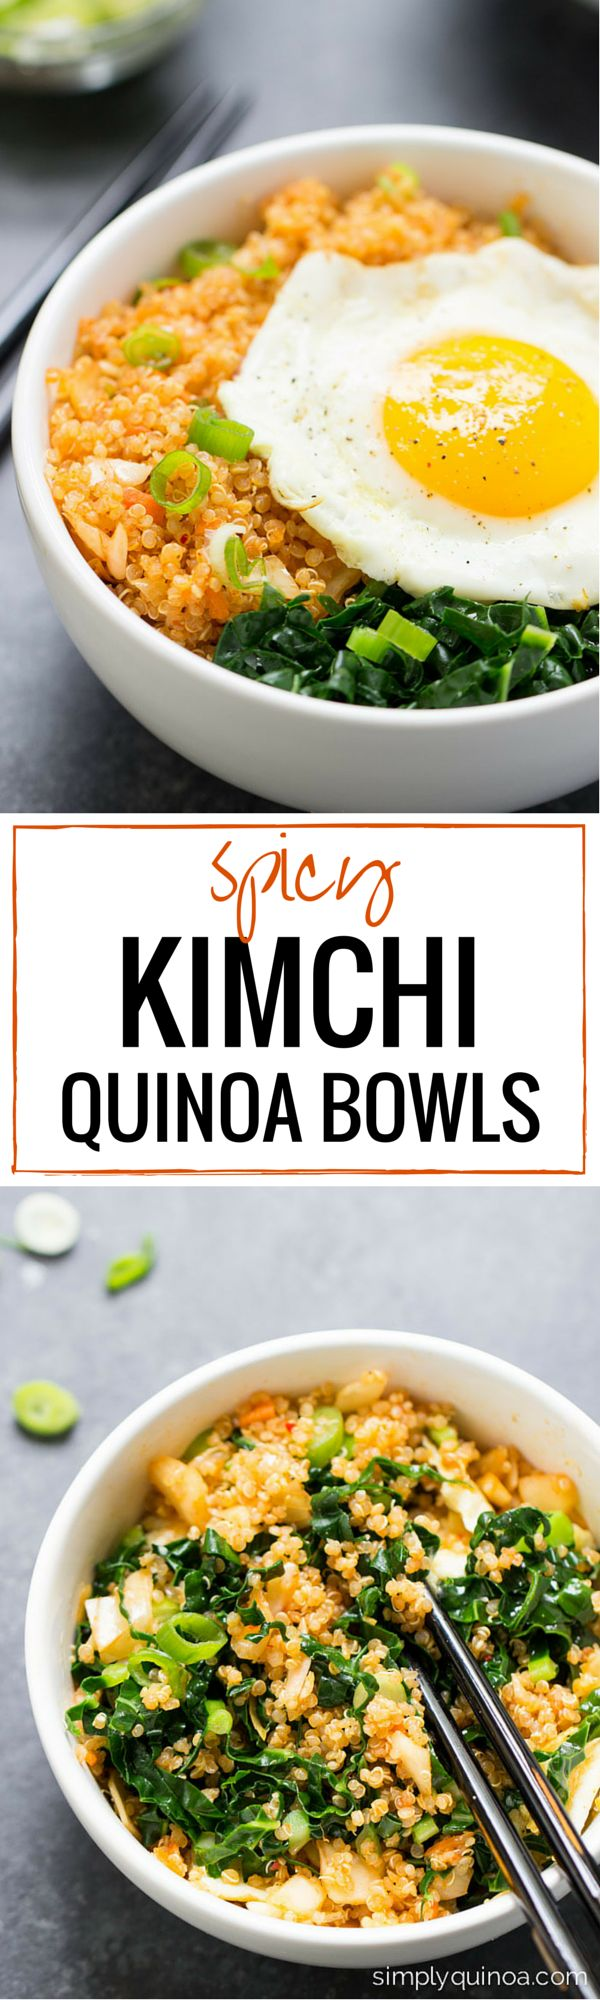 Spicy Kimchi Quinoa Bowls - A gluten-free dish that's filled with bacteria that's good for your gut!